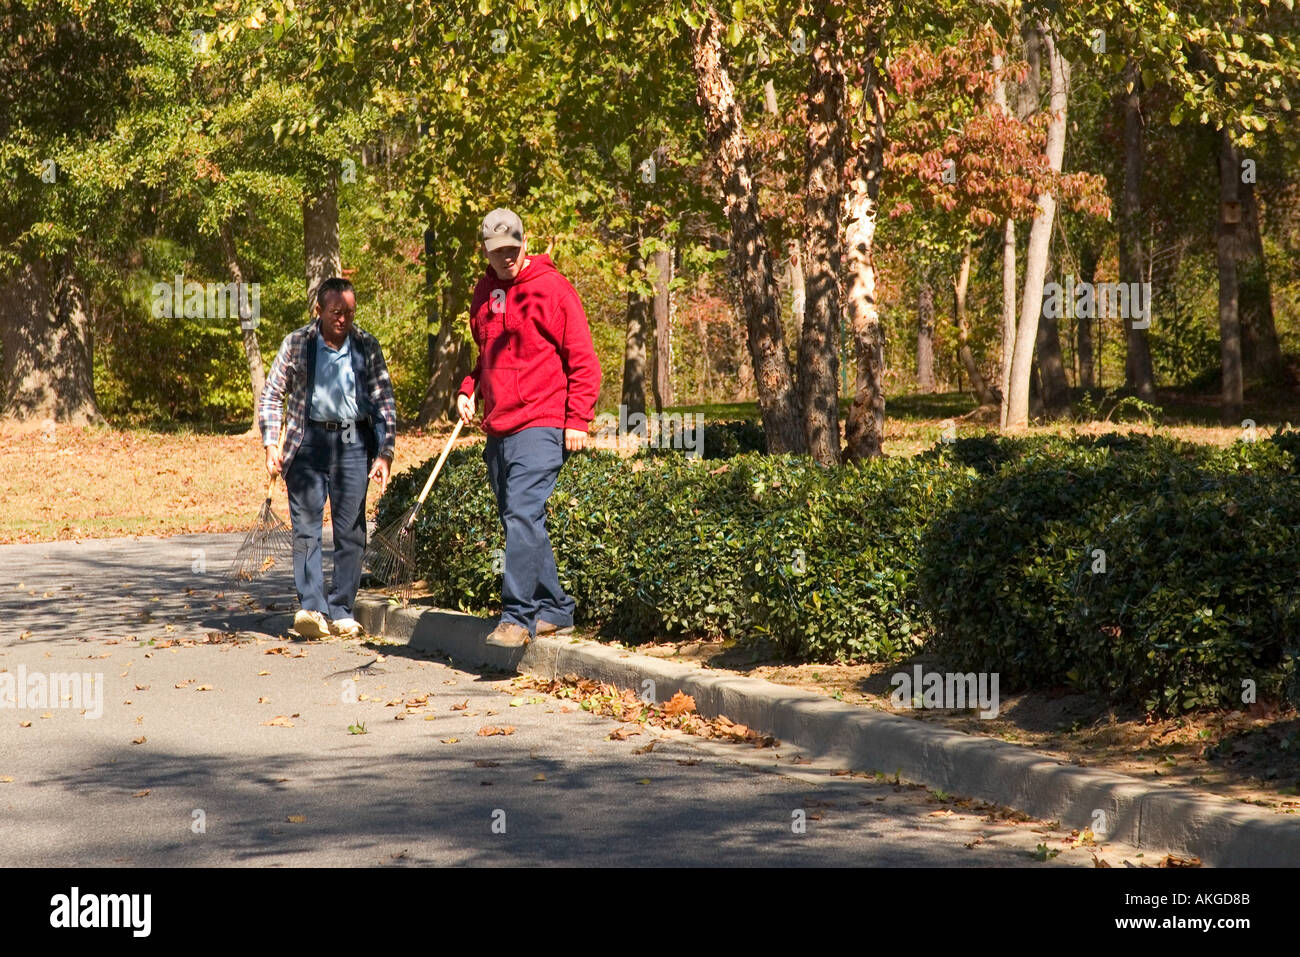 Workers rake Fall leaves at Saluda Shoals Park Columbia South Carolina USA Stock Photo